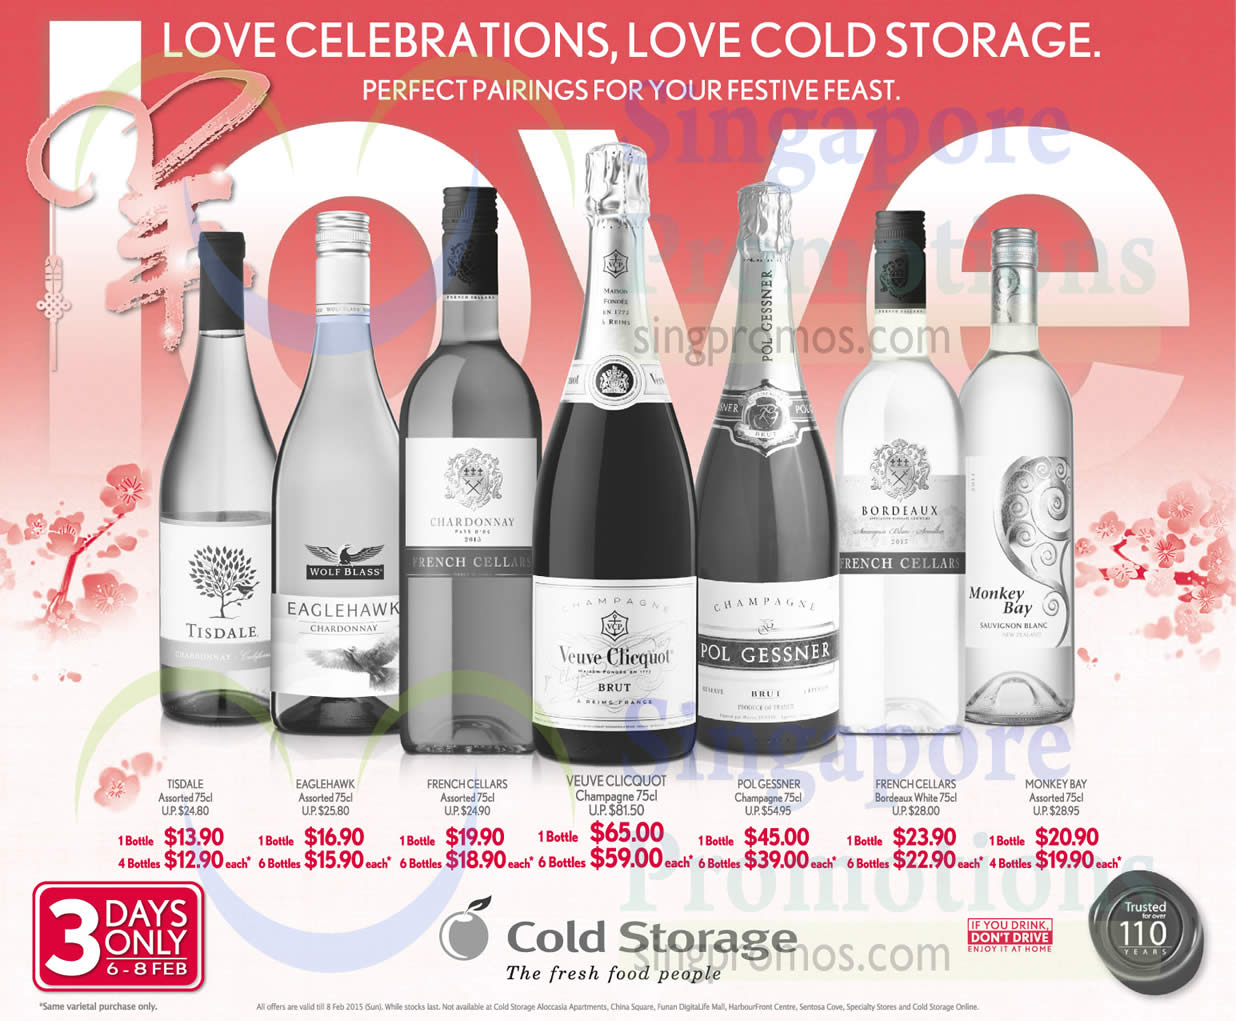 6 Feb Wines, Tisdale, Eaglehawk, French Cellars, Veuve Clicquot Champagne, Polgessner Champagne, French Cellars Bordeaux White, Monkey Bay